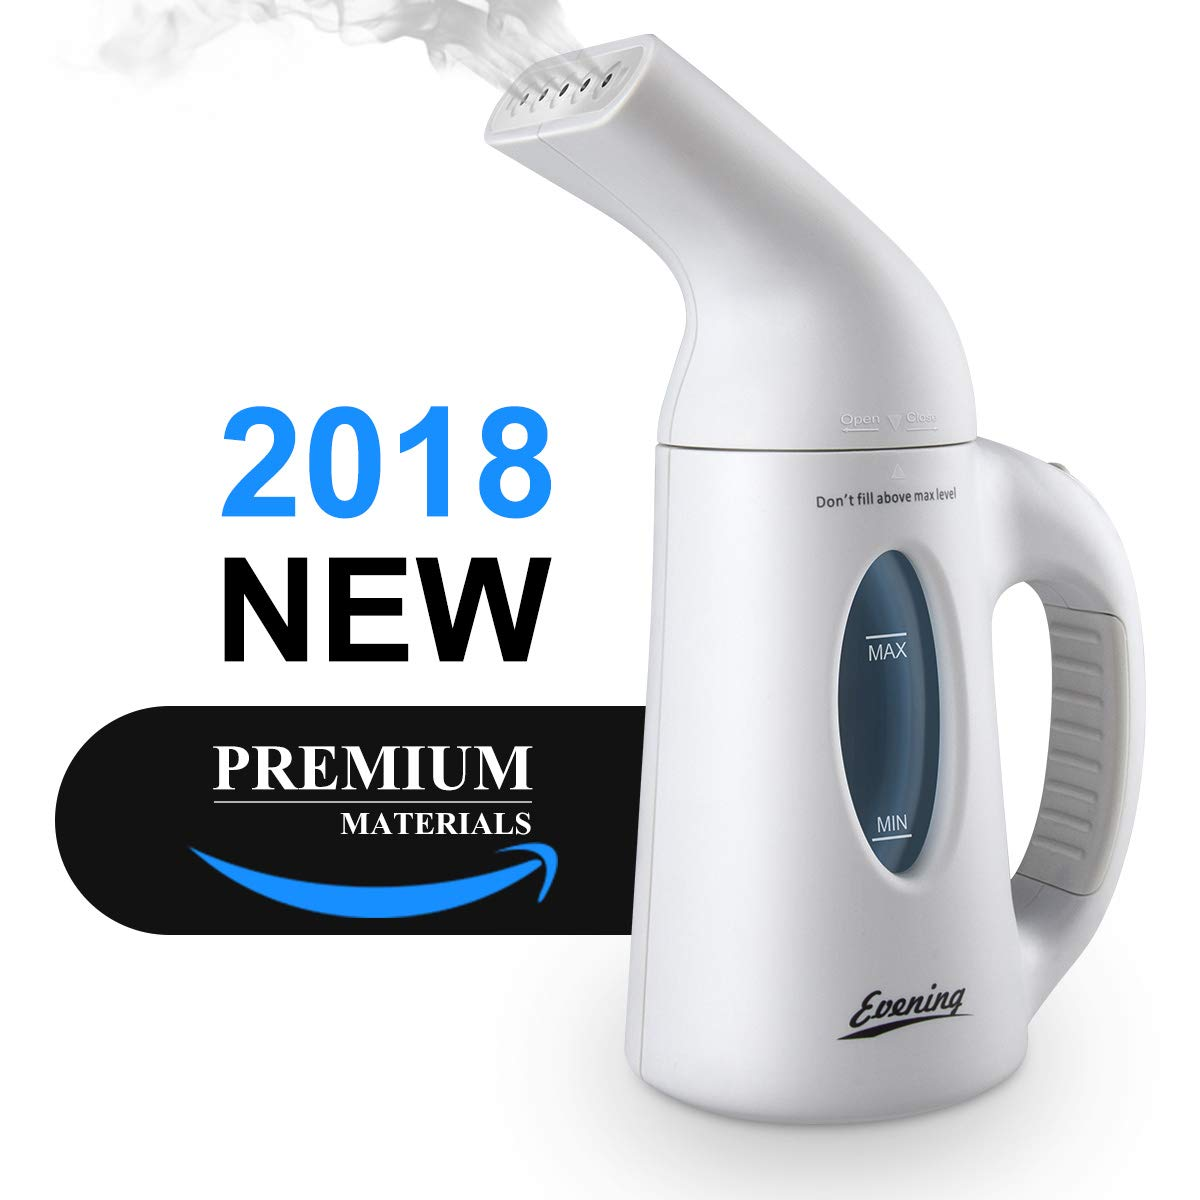 Evening Protable Steamer Travel Steamer for Clothes Handheld Steamer for Home/Travel Use Clean, Sterilize,Neutralizes Odors Hand Held Steamer Garment and Soft Fabric Steamers Fast Heats Up